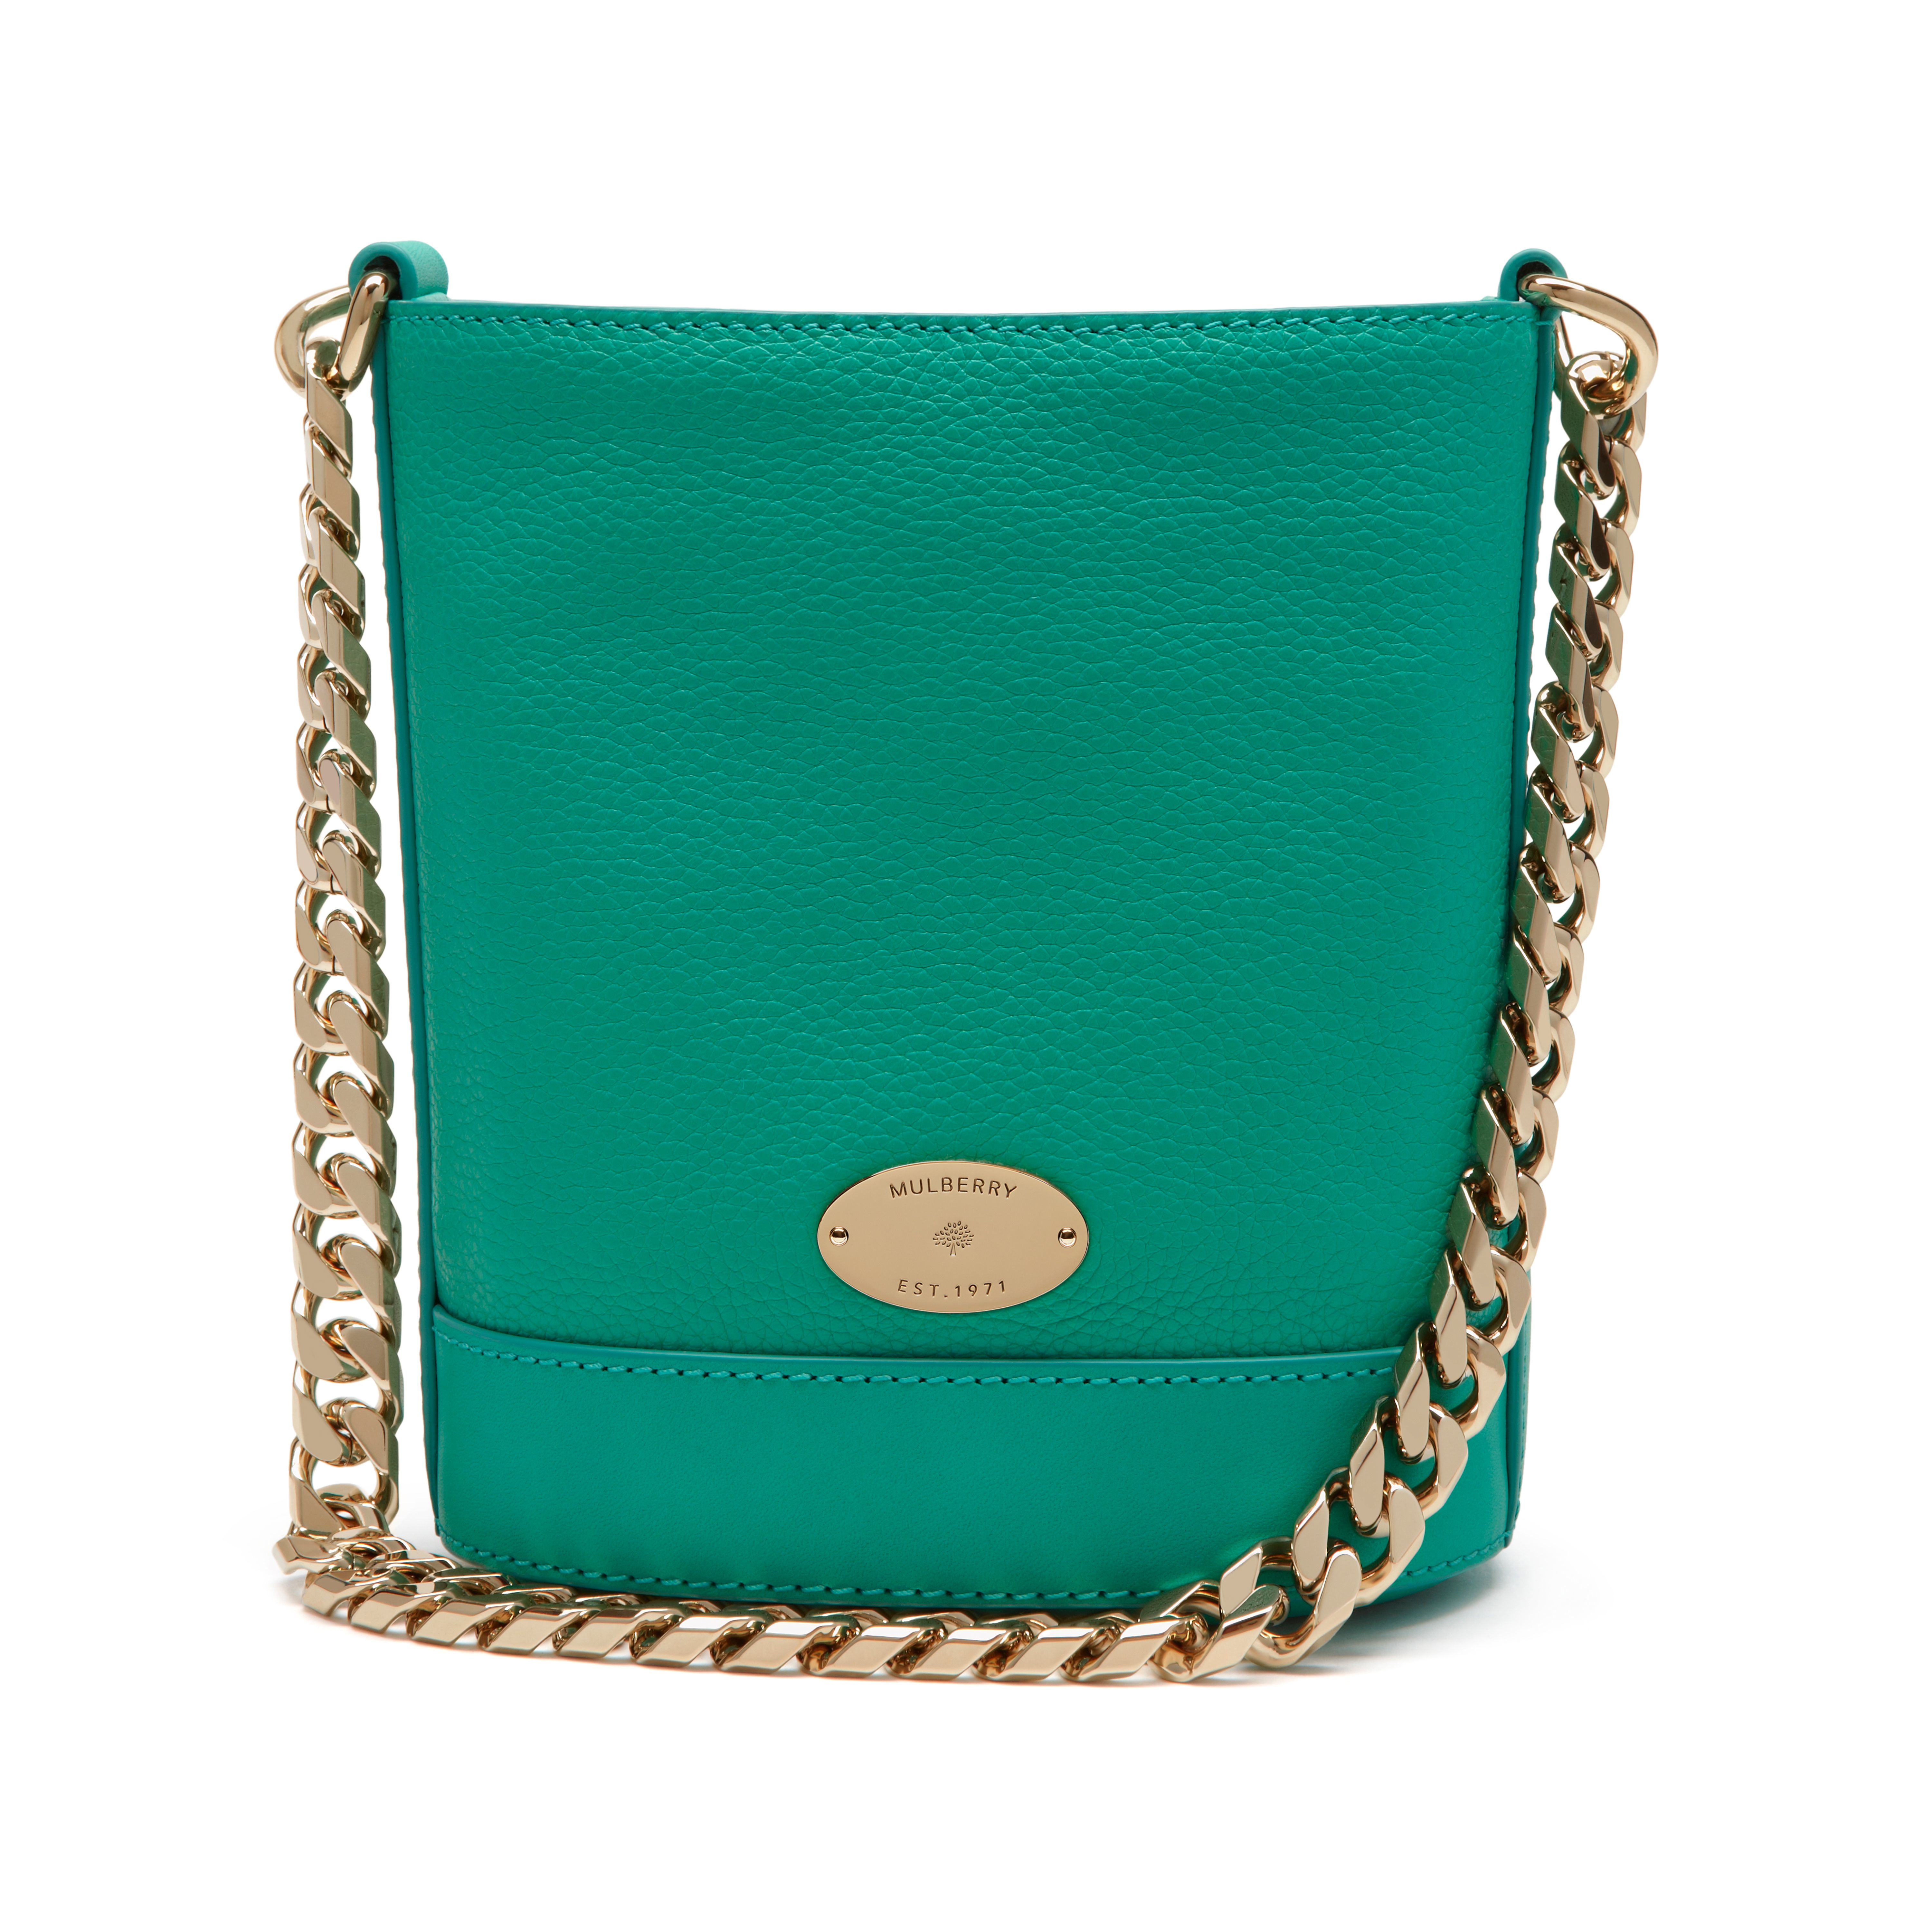 62686fefe1 Lyst - Mulberry Mini Jamie Leather Bag in Green